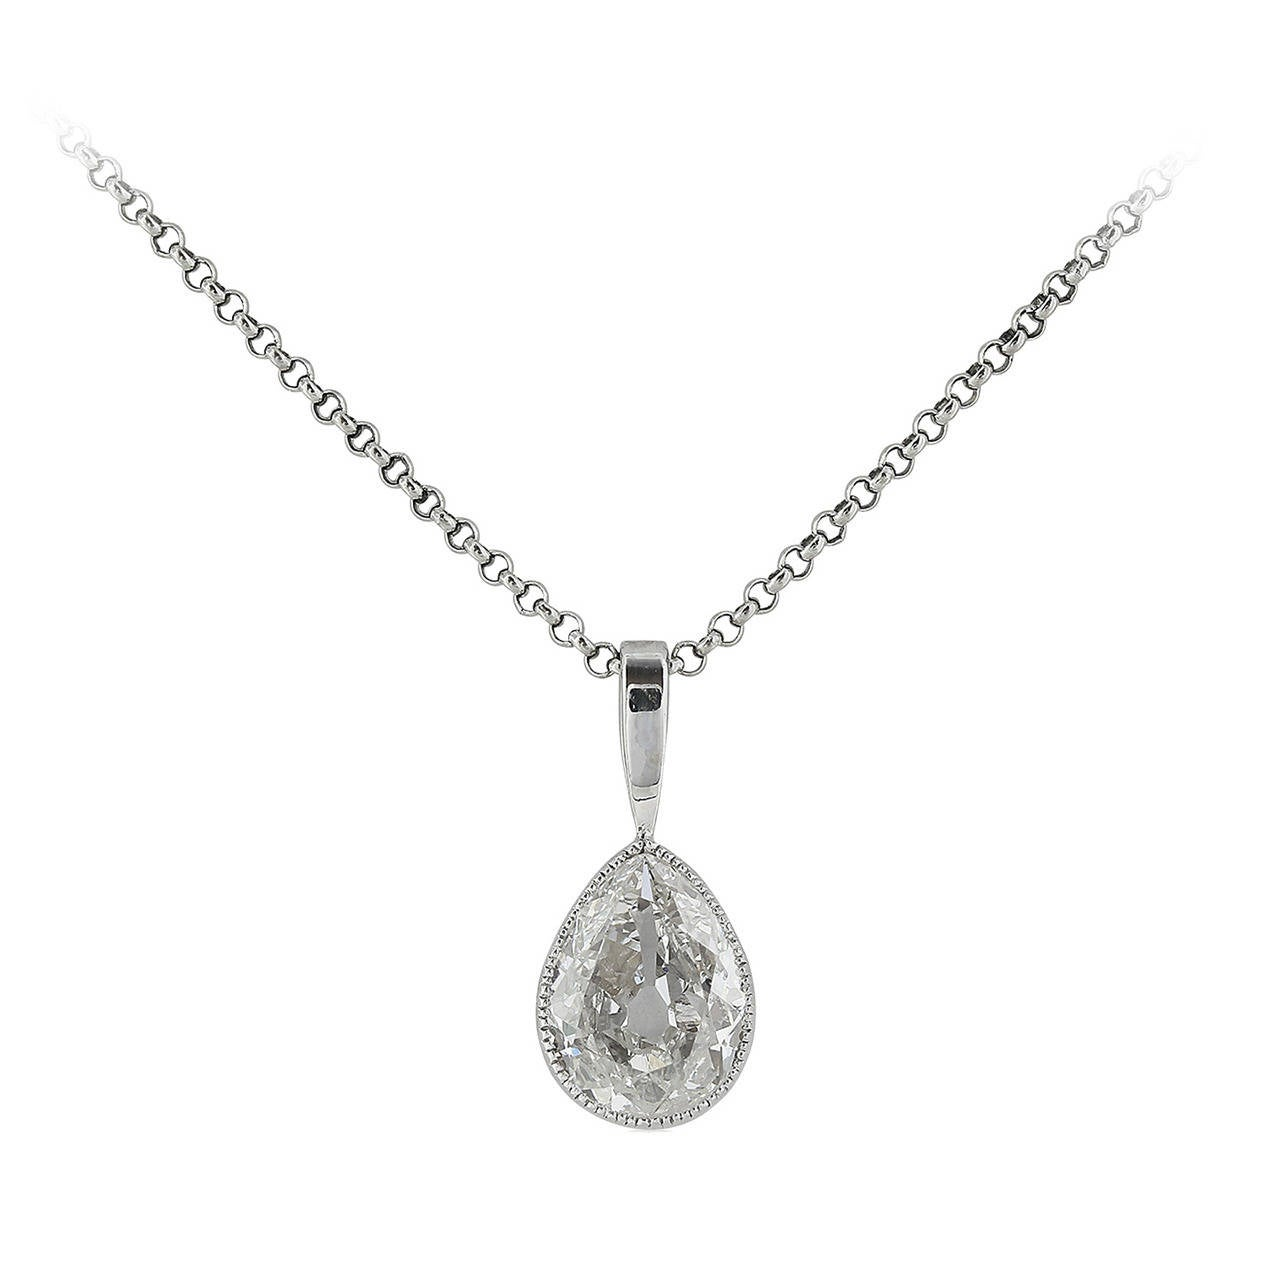 1.10 Carat Antique Pear Diamond Platinum Pendant